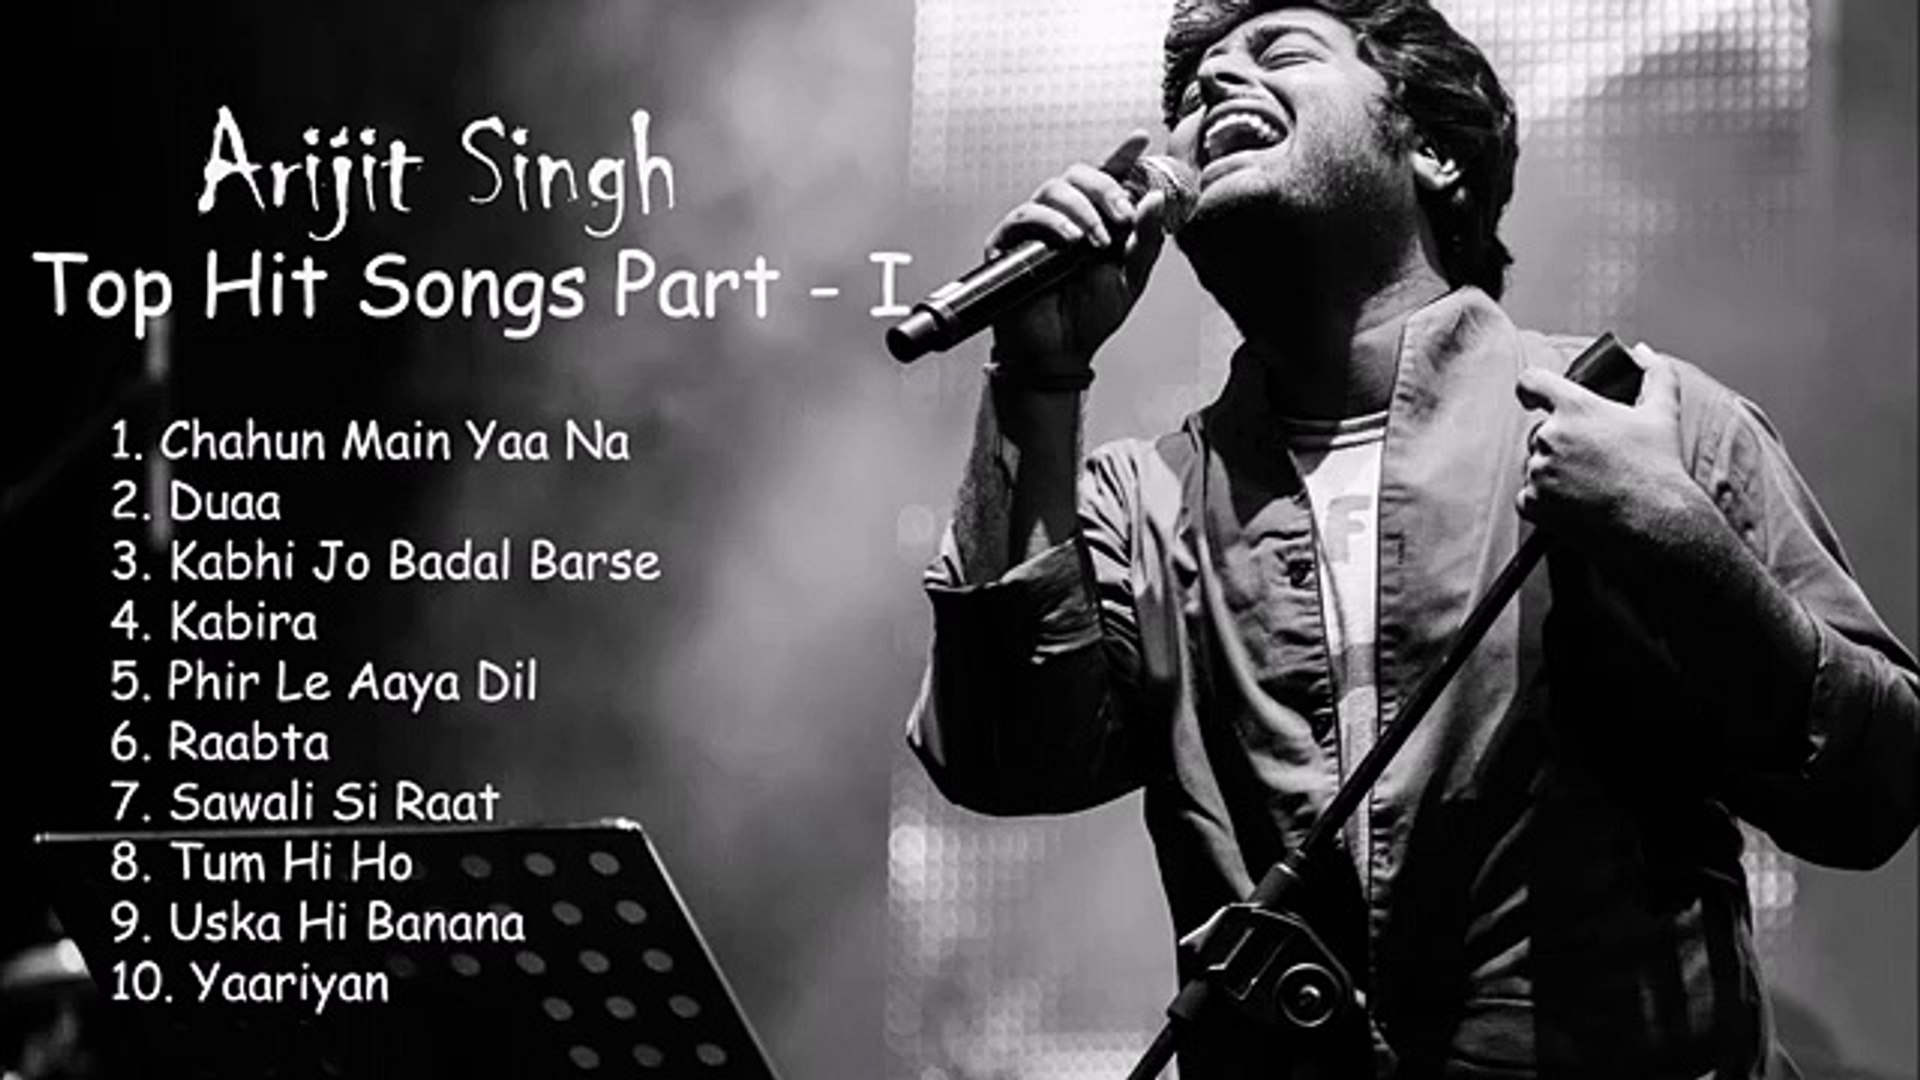 Arijit Singh Best Hit Songs Part-I  Arijit Singh New Songs